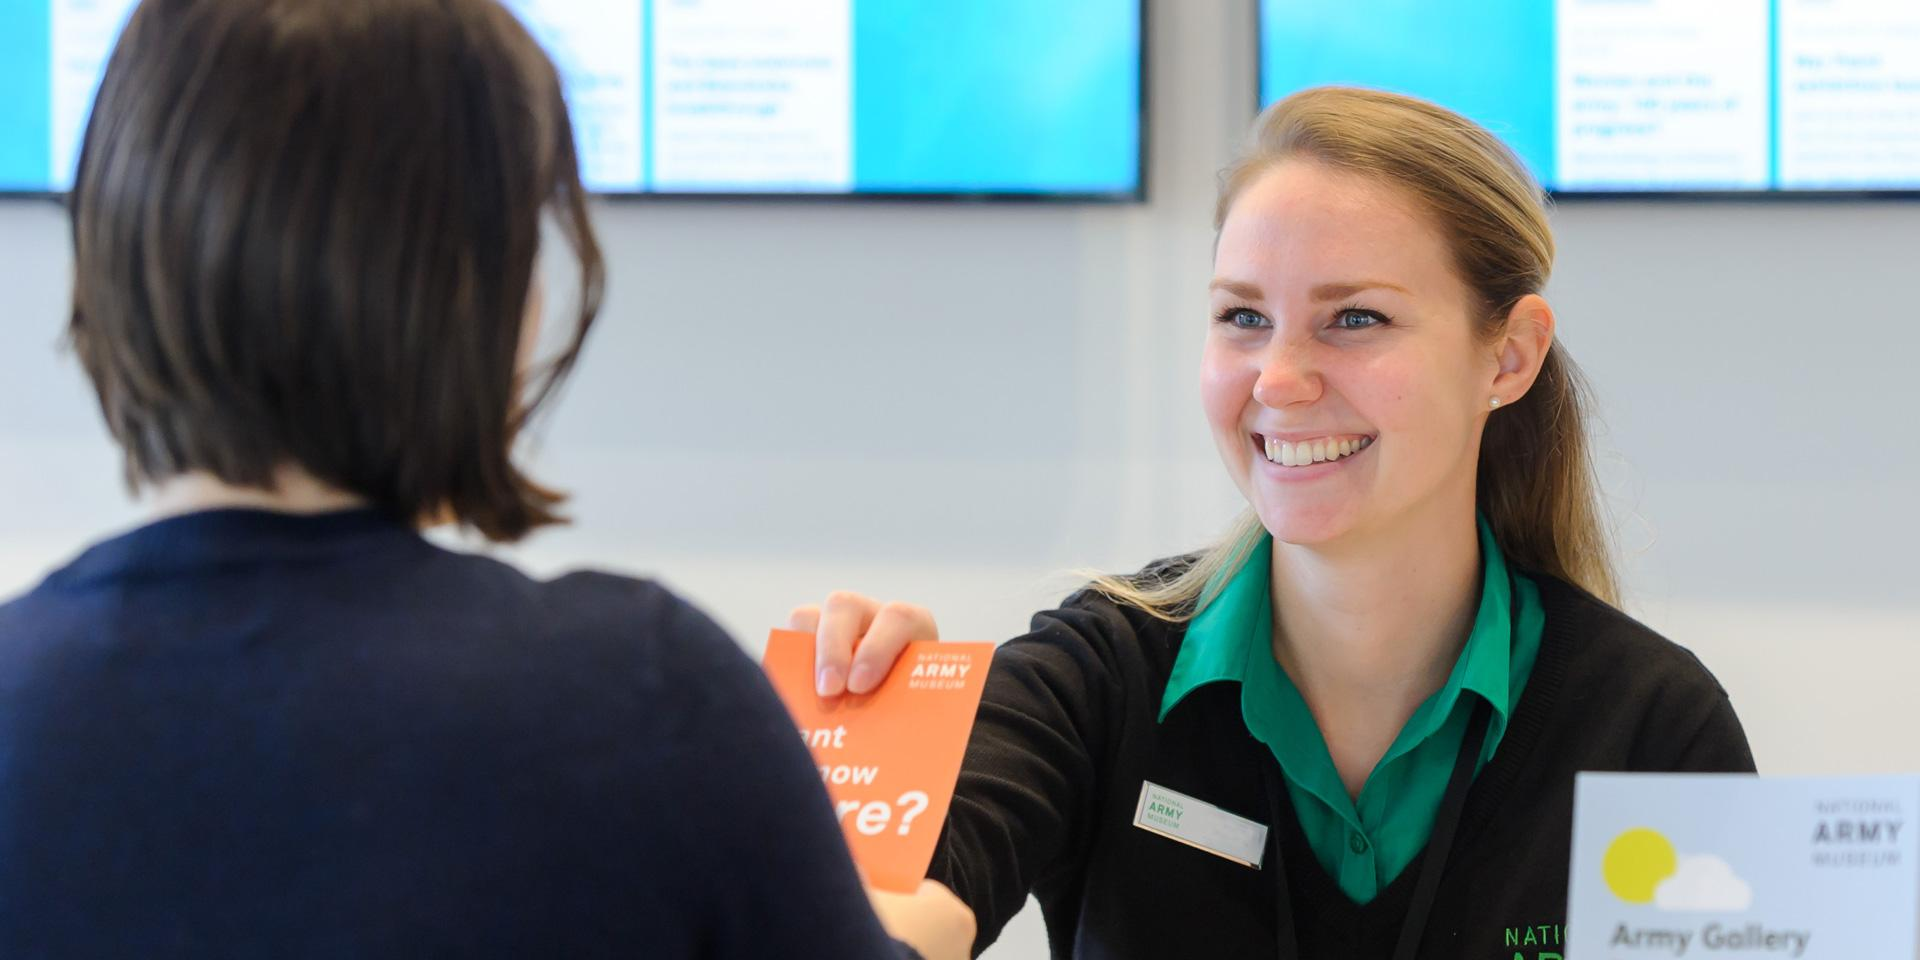 A visitor being greeted by a member of staff.